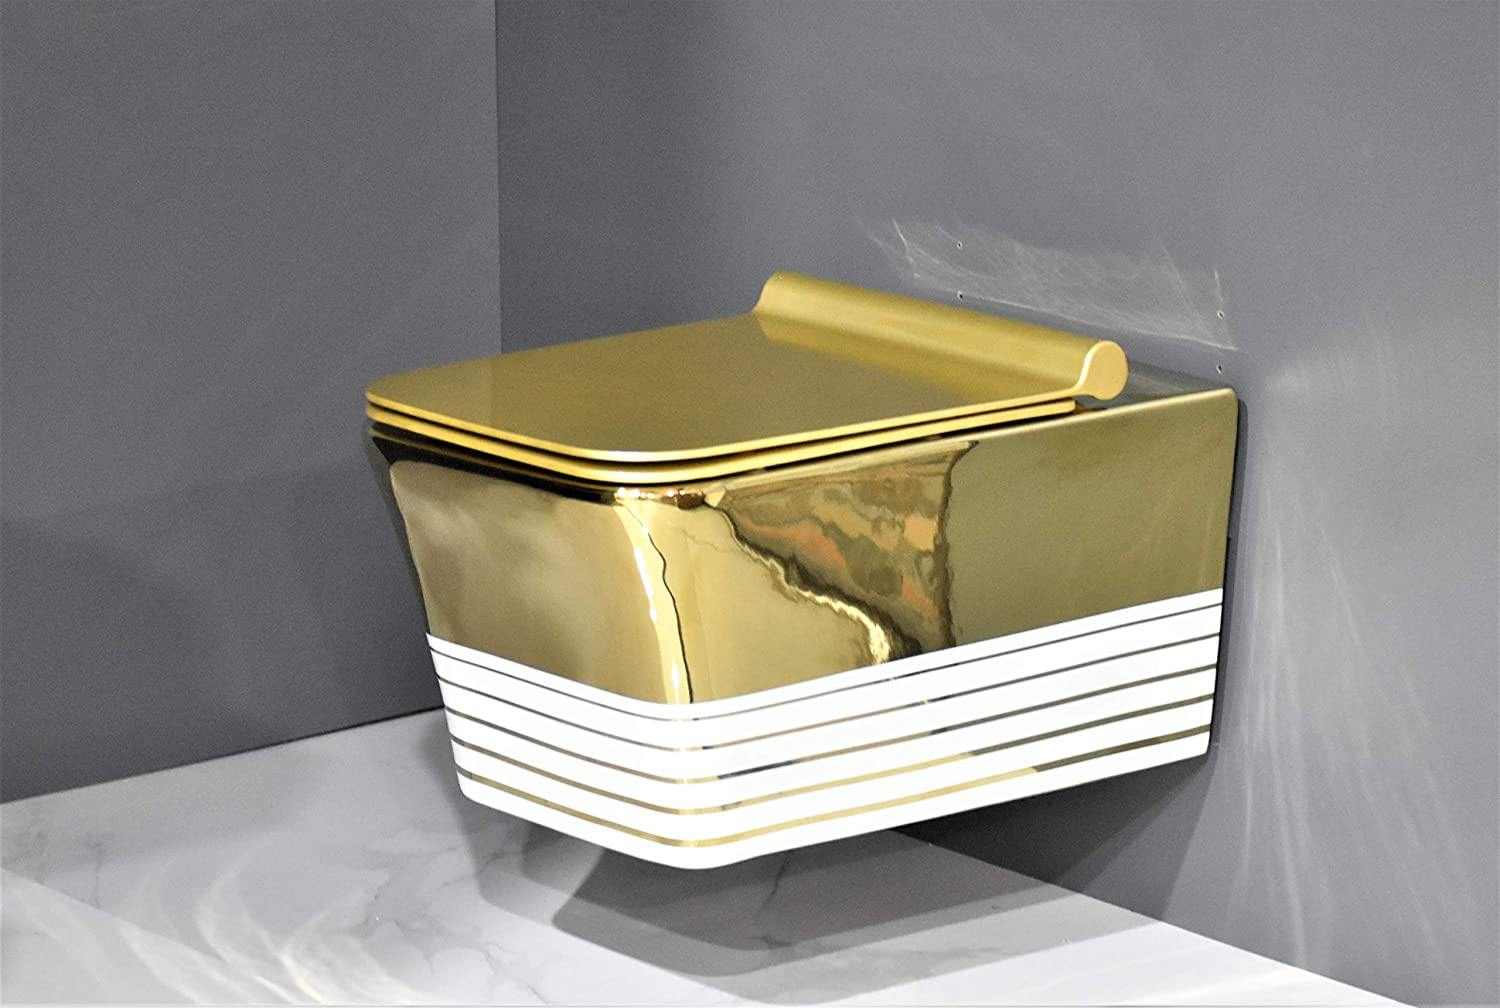 Wall Hung Toilet Bowl Bathroom Square Toilet Bowl Wall Mount Toilet With Rimless Flush 53.5 x 36 x 35.5 CM Gold Color Stripes - Home Store Cart